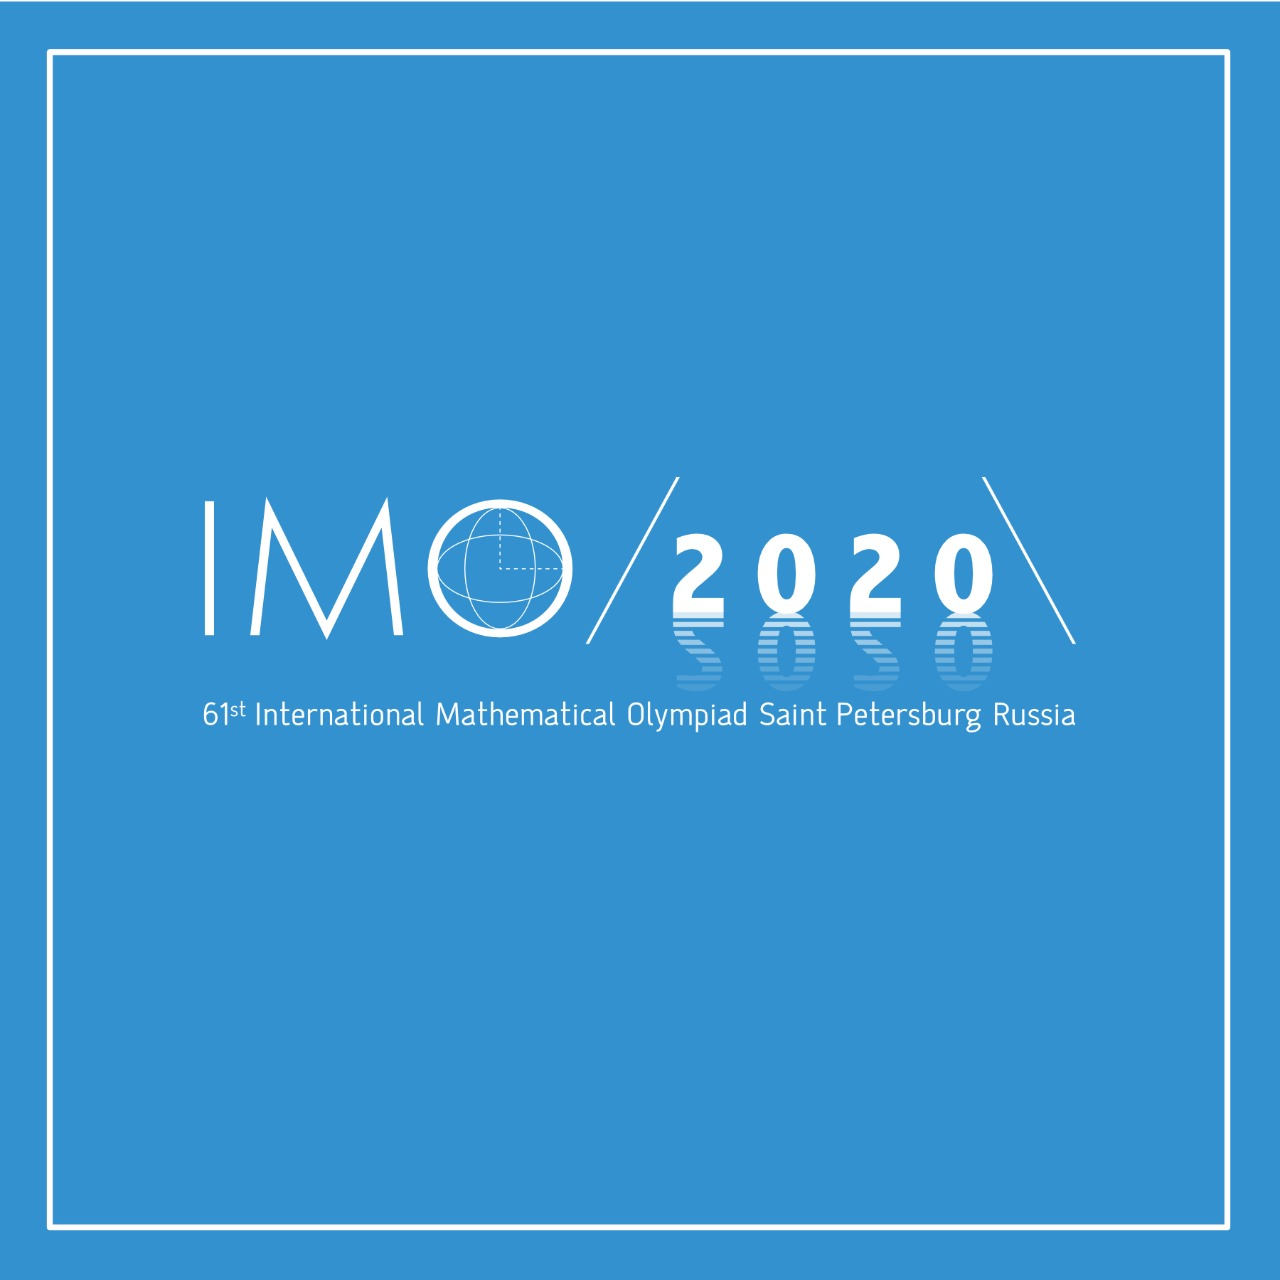 The closing ceremony of the 61st IMO 2020